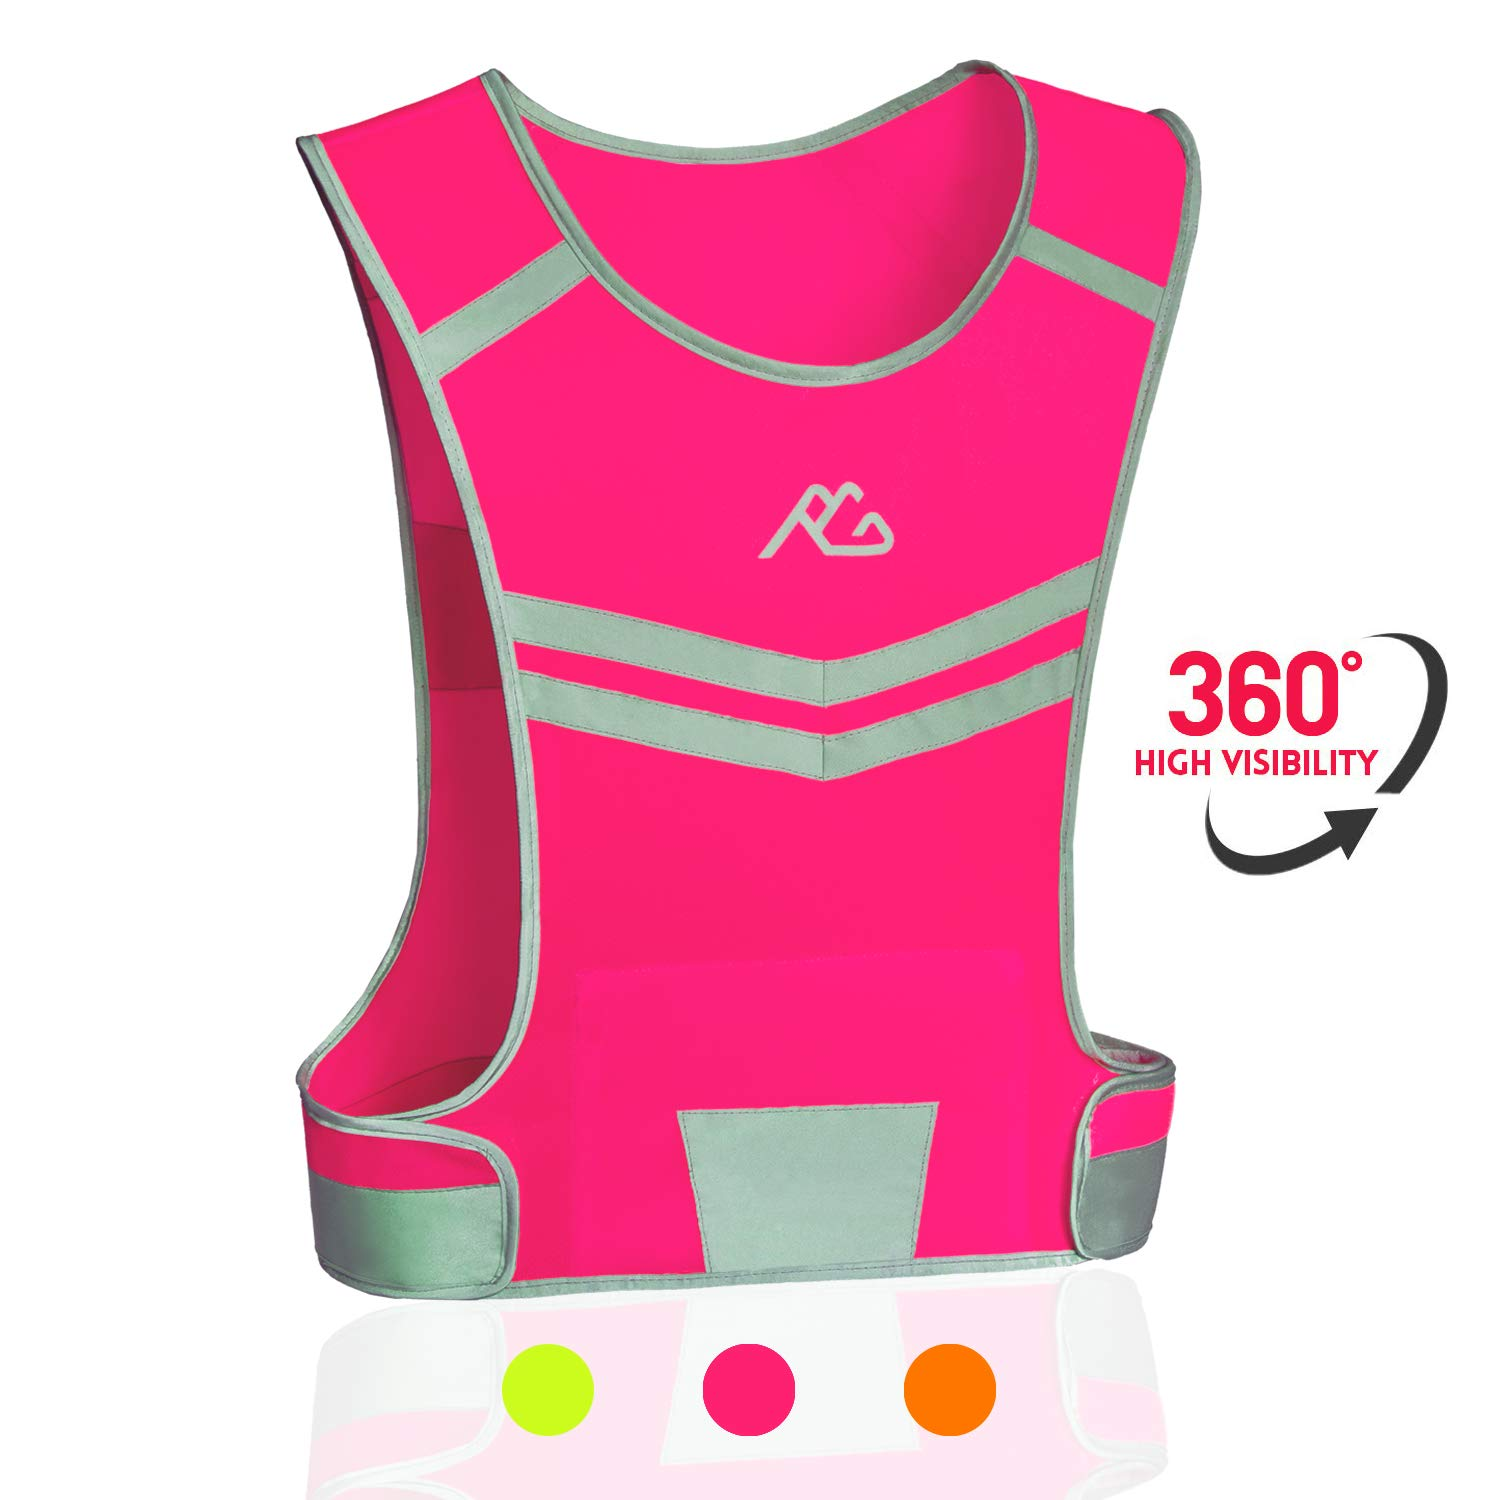 Light /& Comfortable Cycling Motorcycle Reflective Vest,Large Zippered Inside Pocket /& Adjustable Waist,High Visibility Night Running Safety Vest GoxRunx Reflective Running Vest Gear